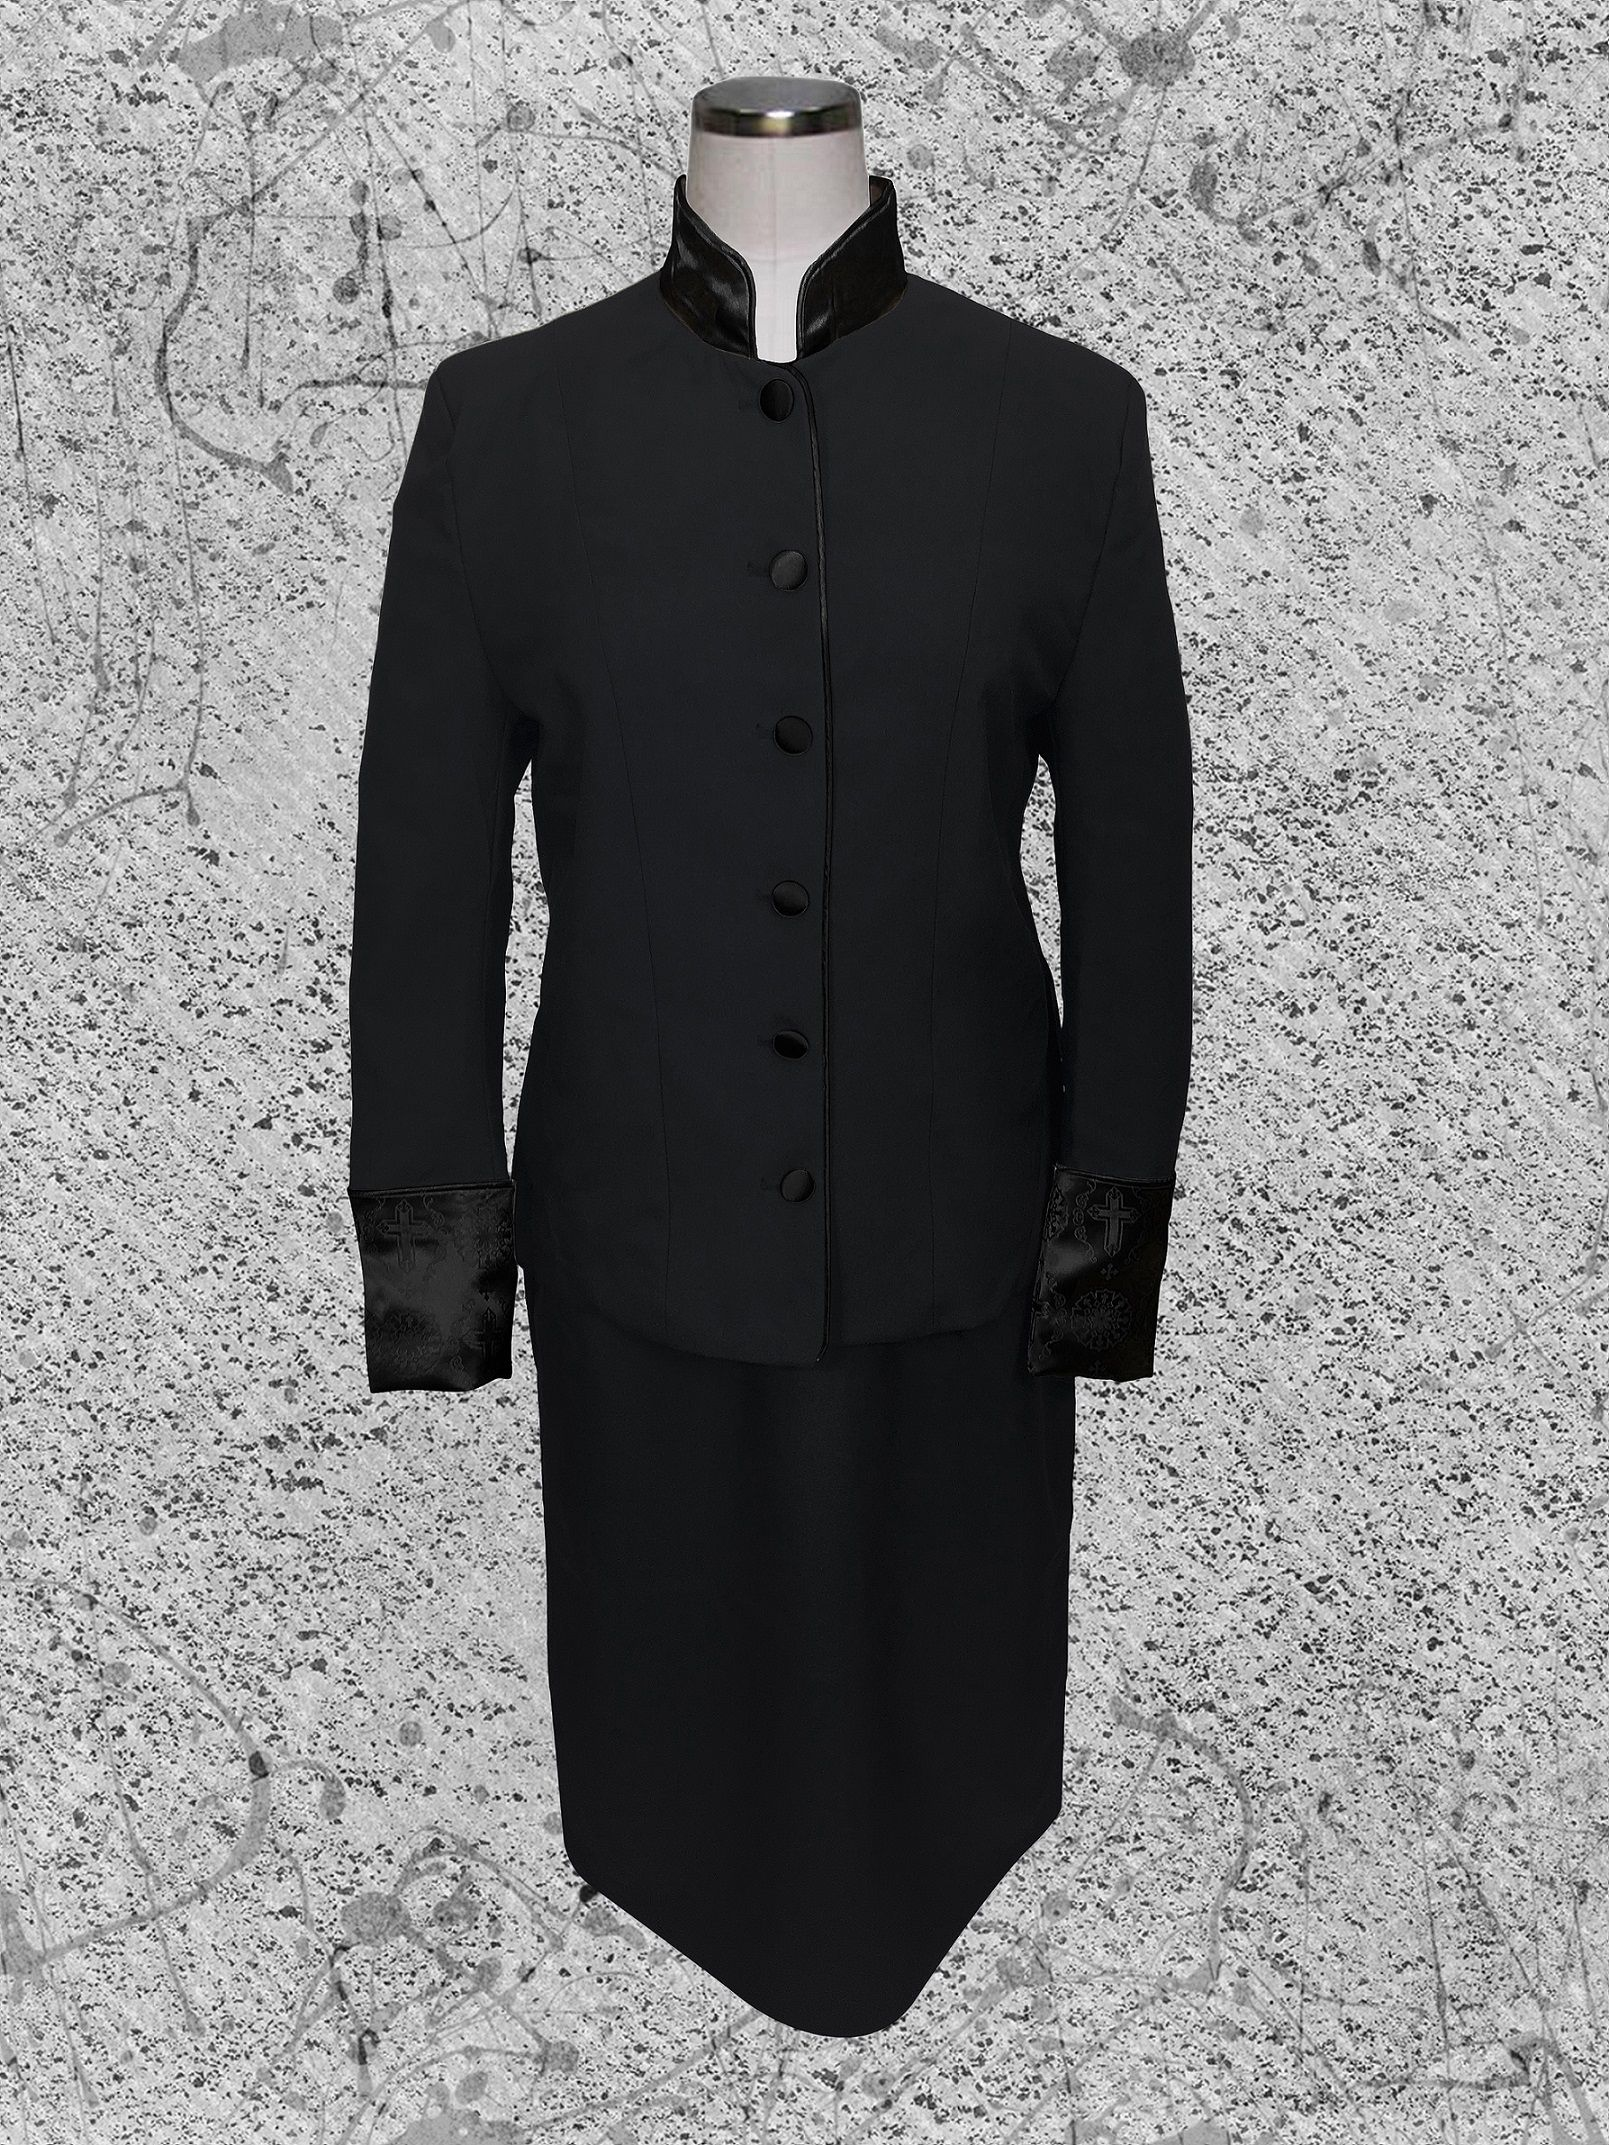 731 W. Women's 2 Pc. Clergy Suit Black with Double Tone Black Brocade